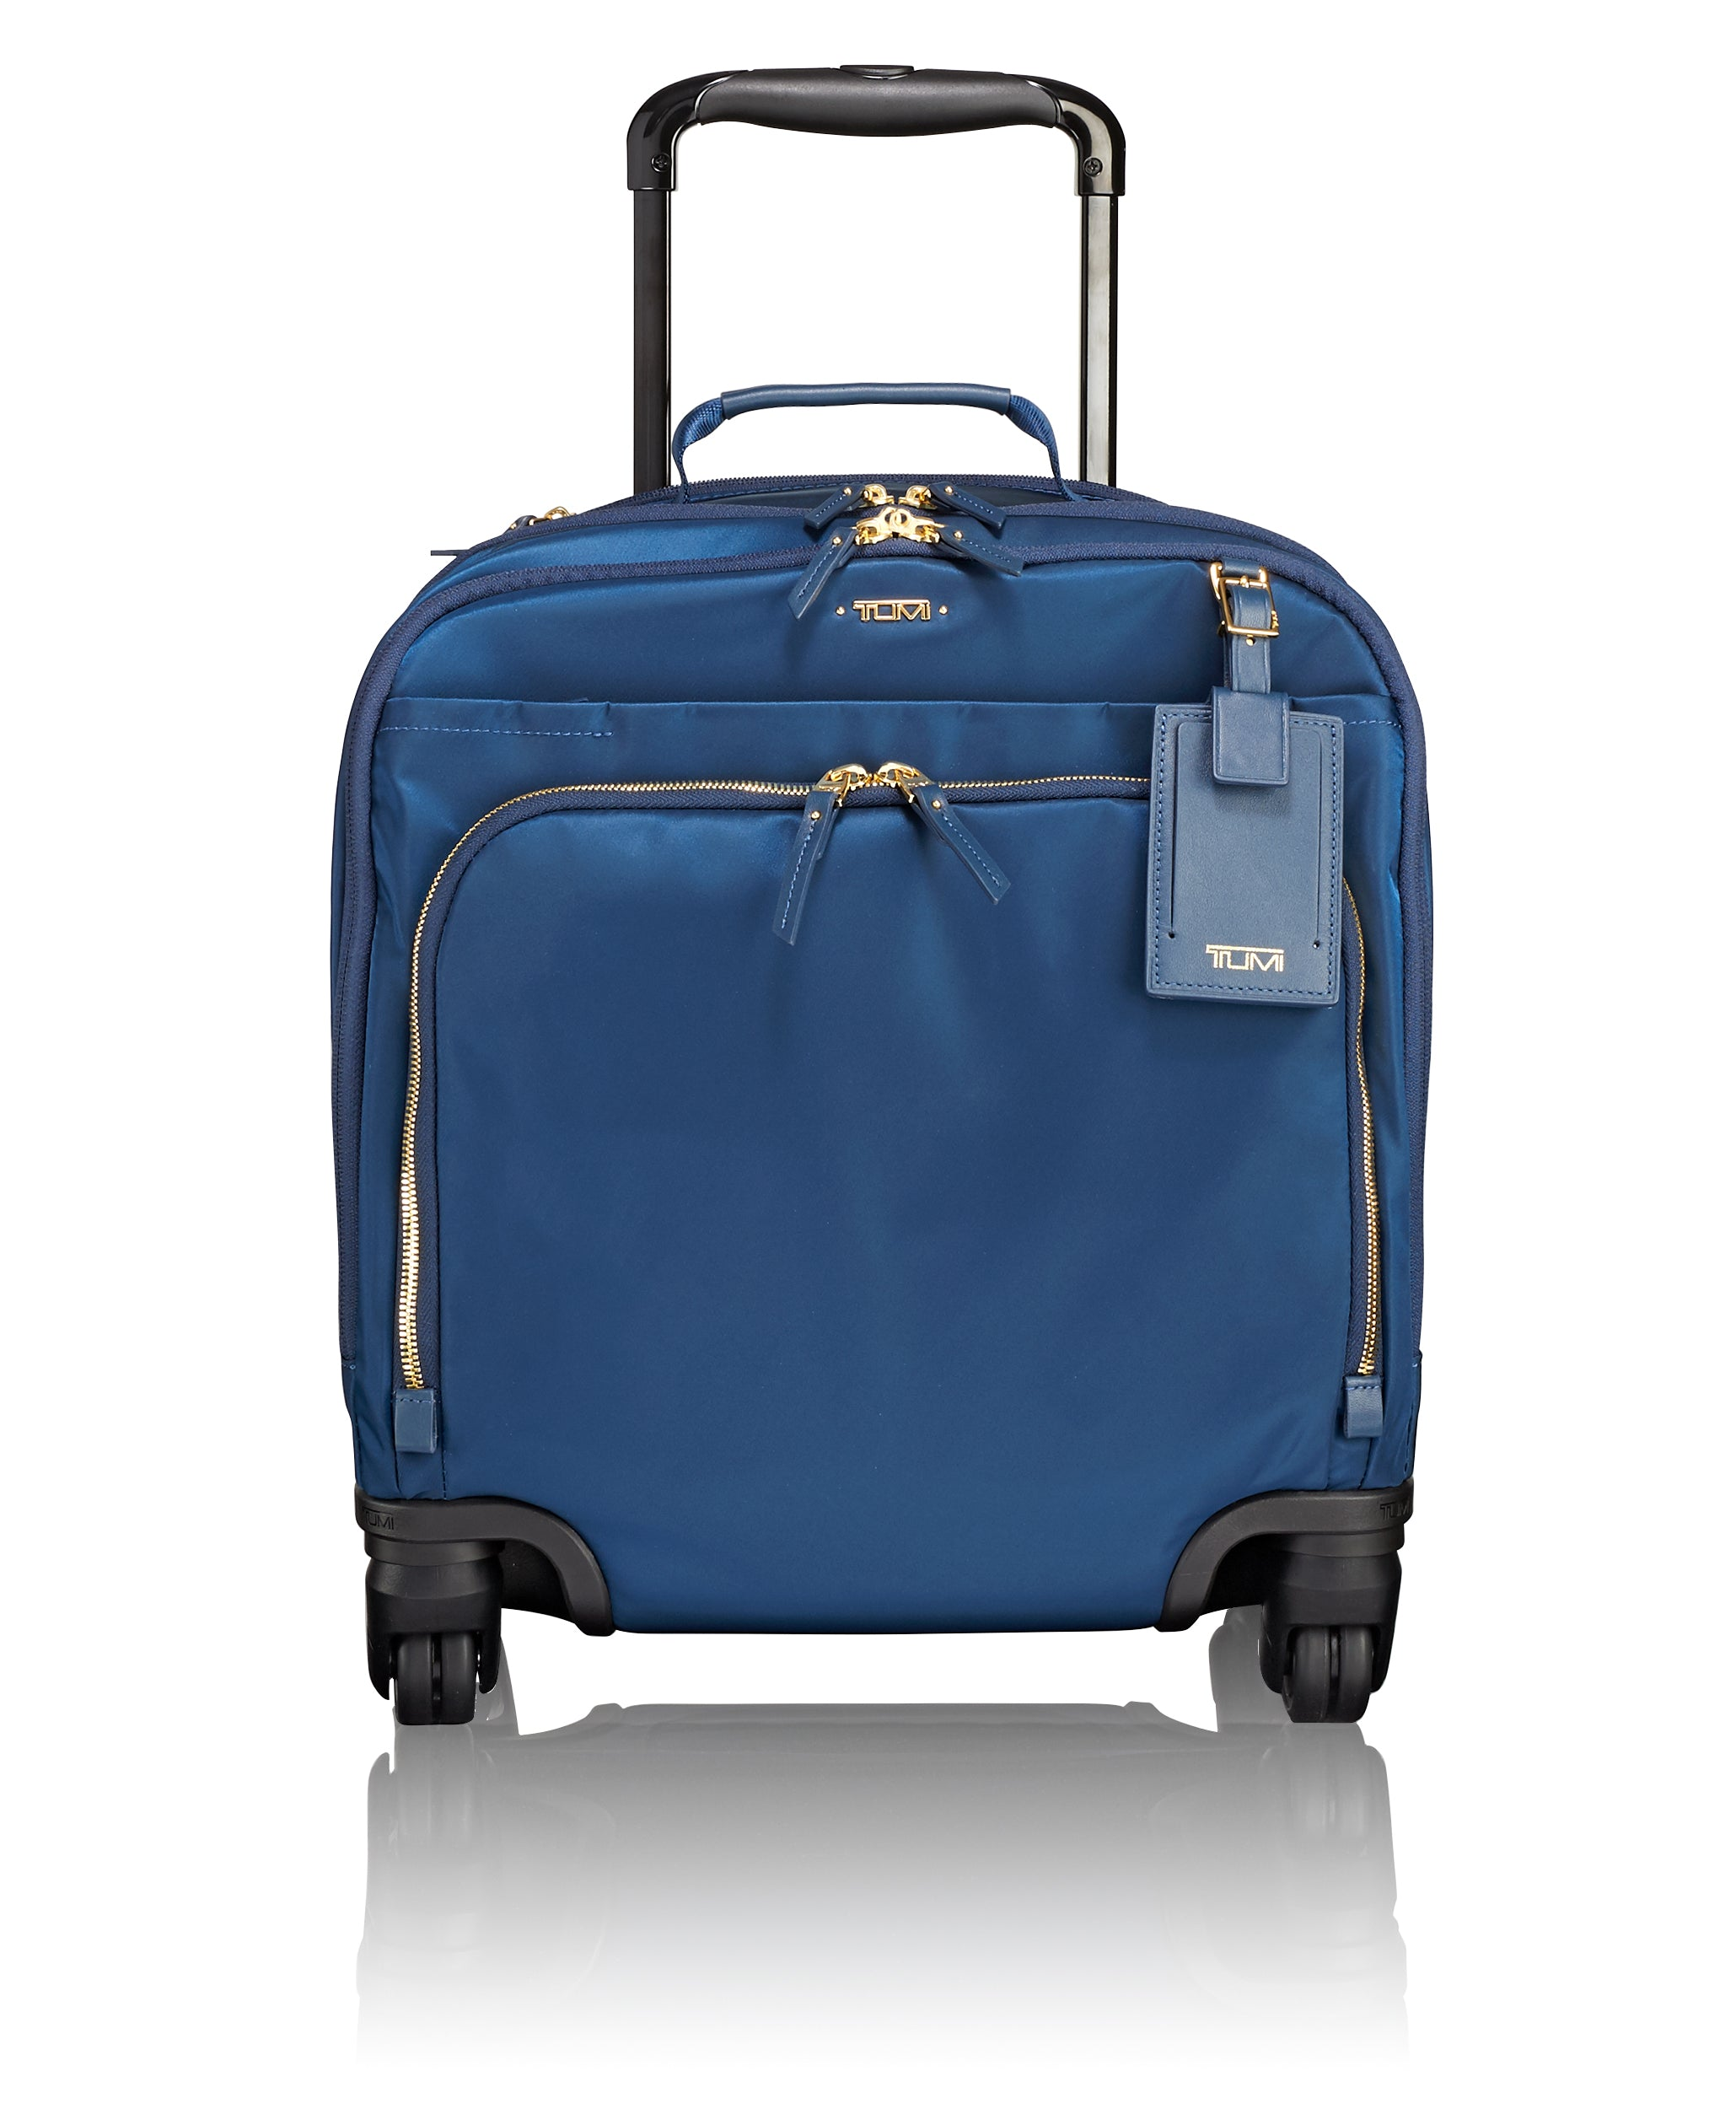 Tumi Voyageur Oslo 4 Wheeled Compact Carry on-Ocean Blue | MEGO